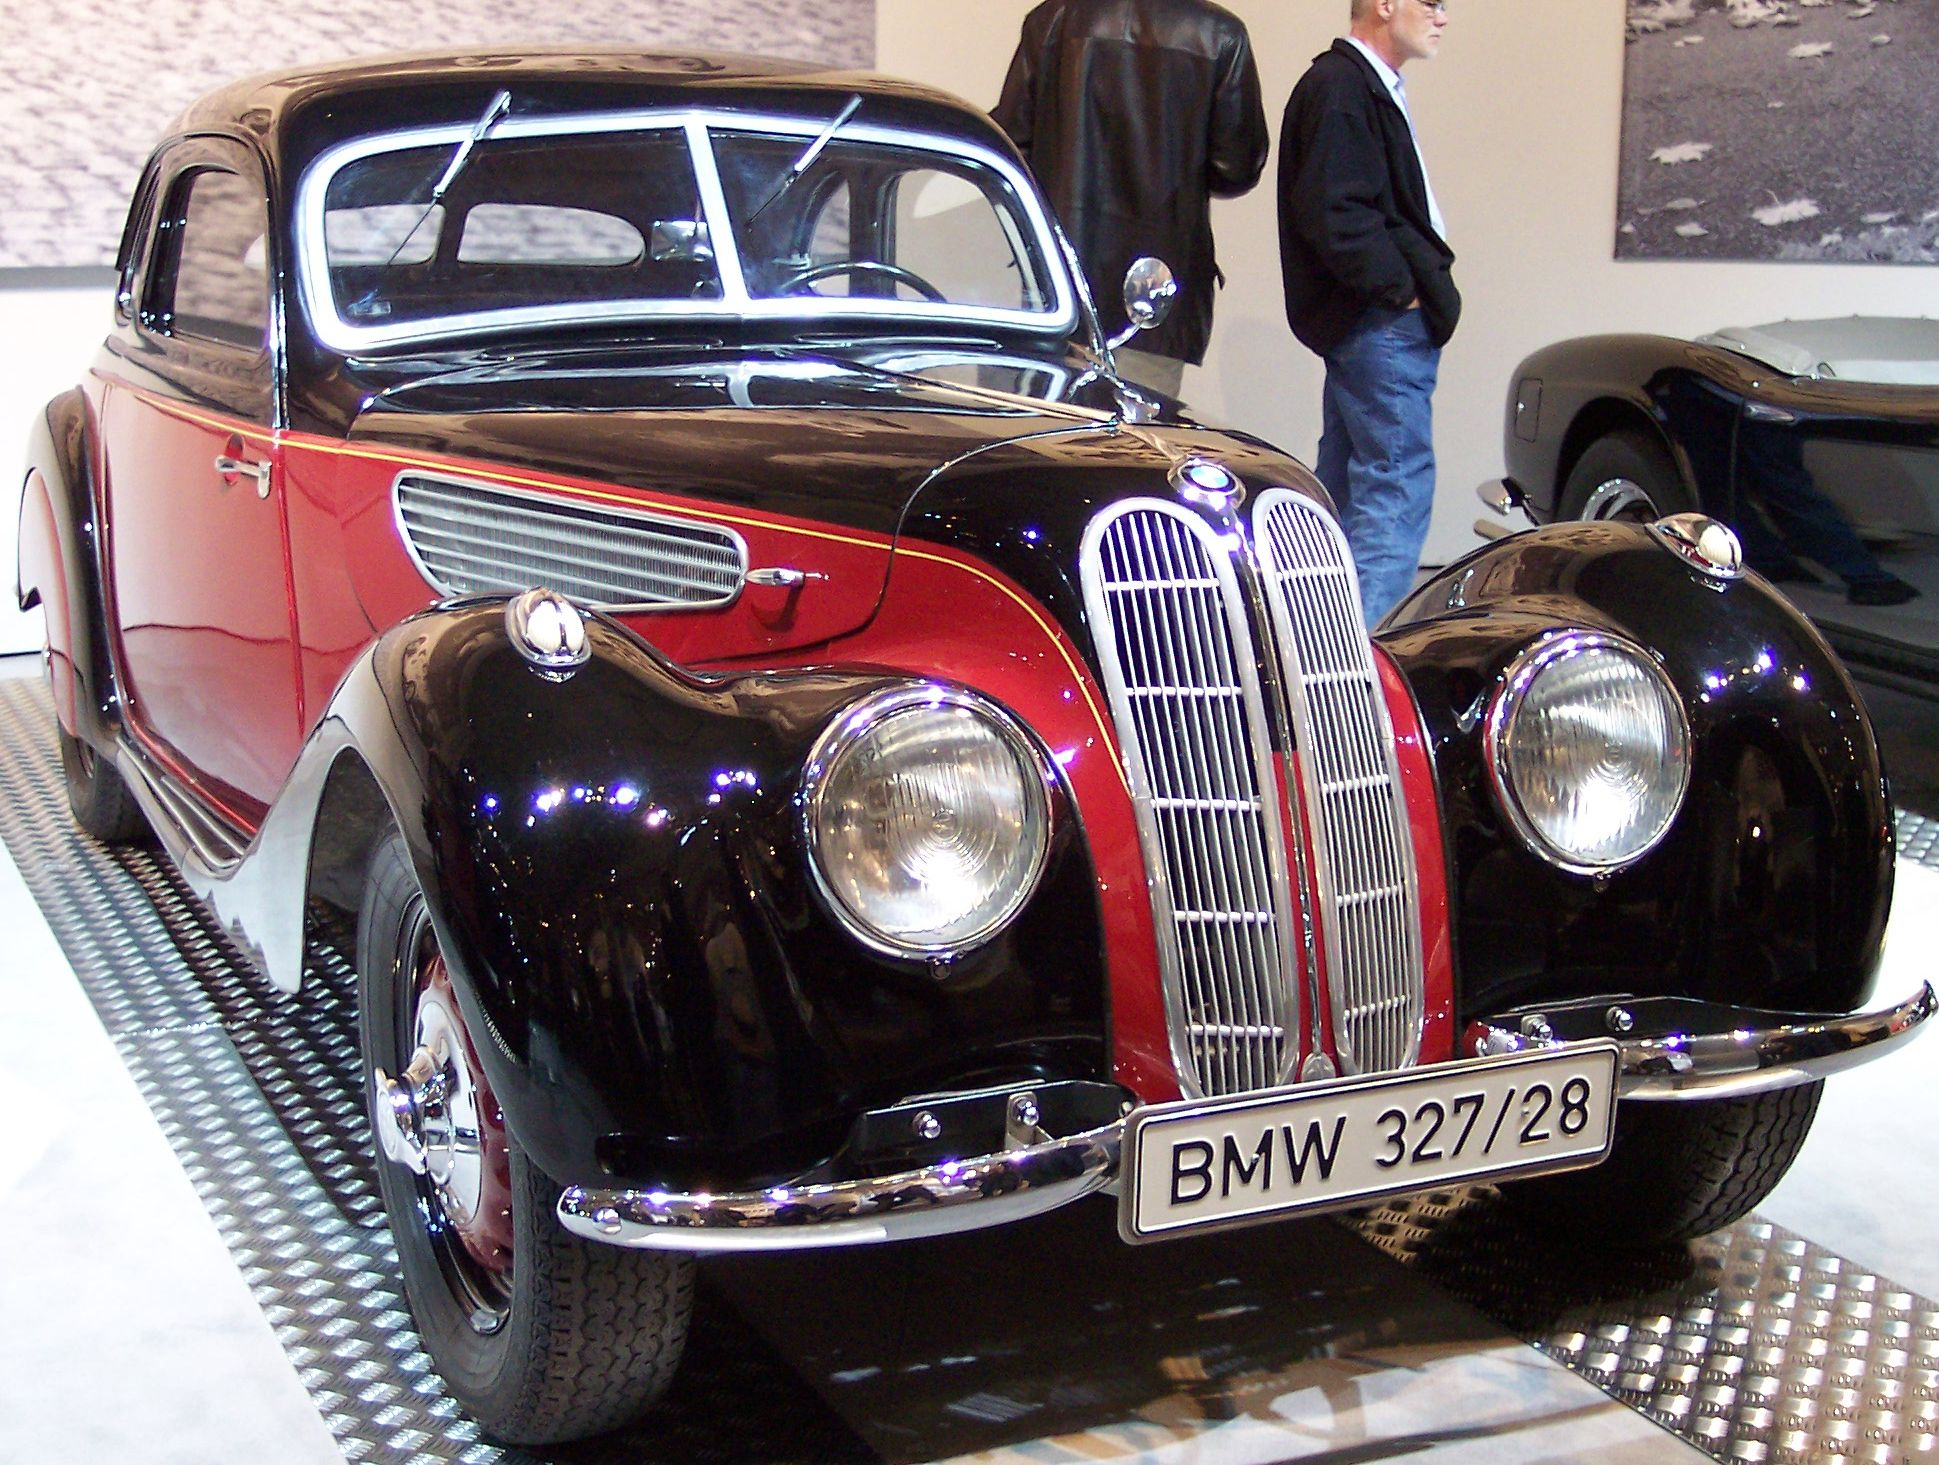 File:BMW 327-328 1937 bicolor vr TCE.jpg - Wikimedia Commons